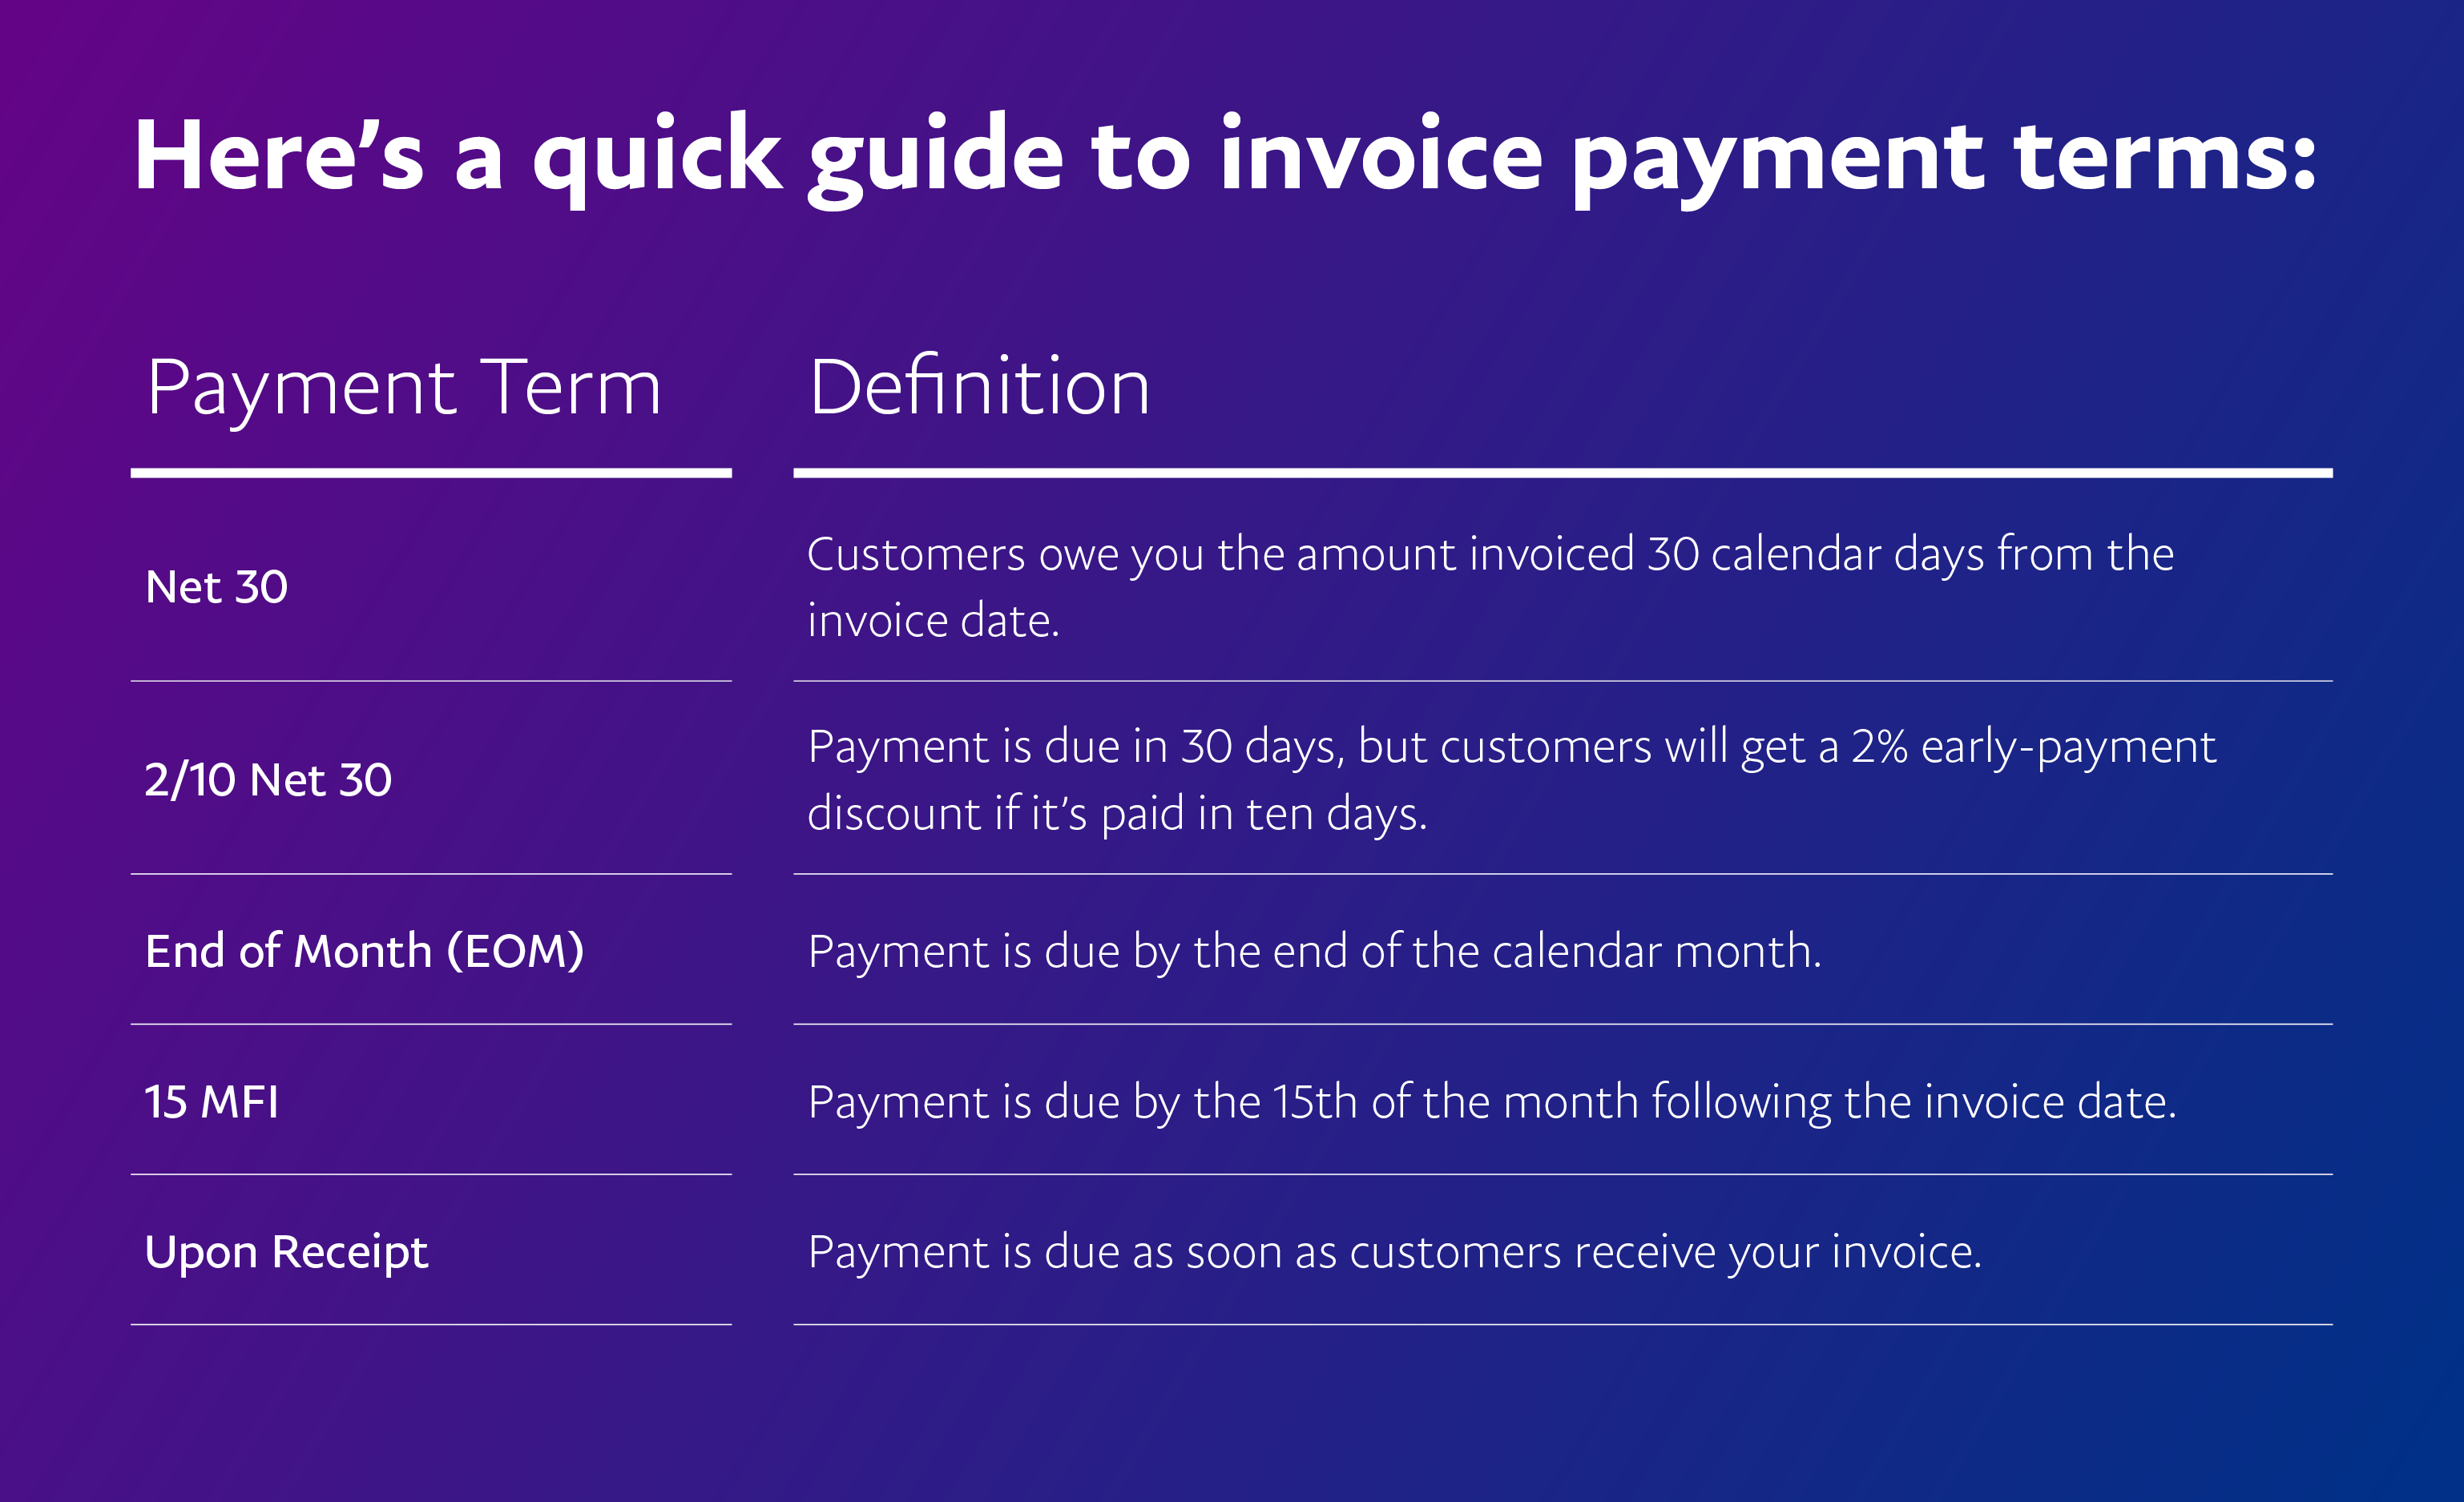 A Quick Guide To Understand Invoice Payment Terms